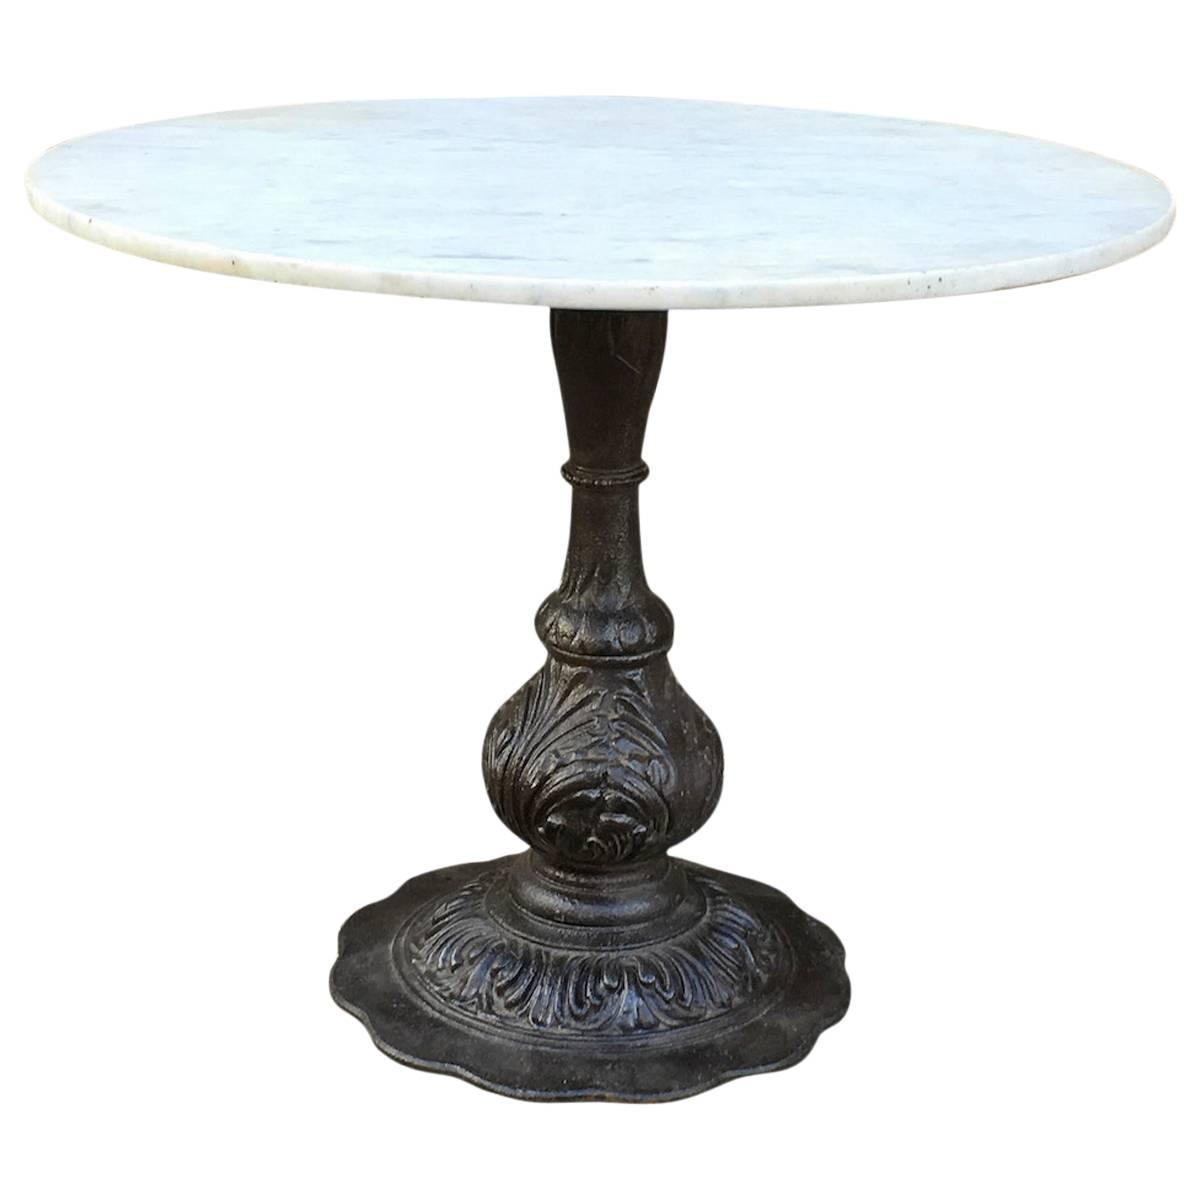 Marble dining table with ornate cast iron base at 1stdibs for Cast iron table ends